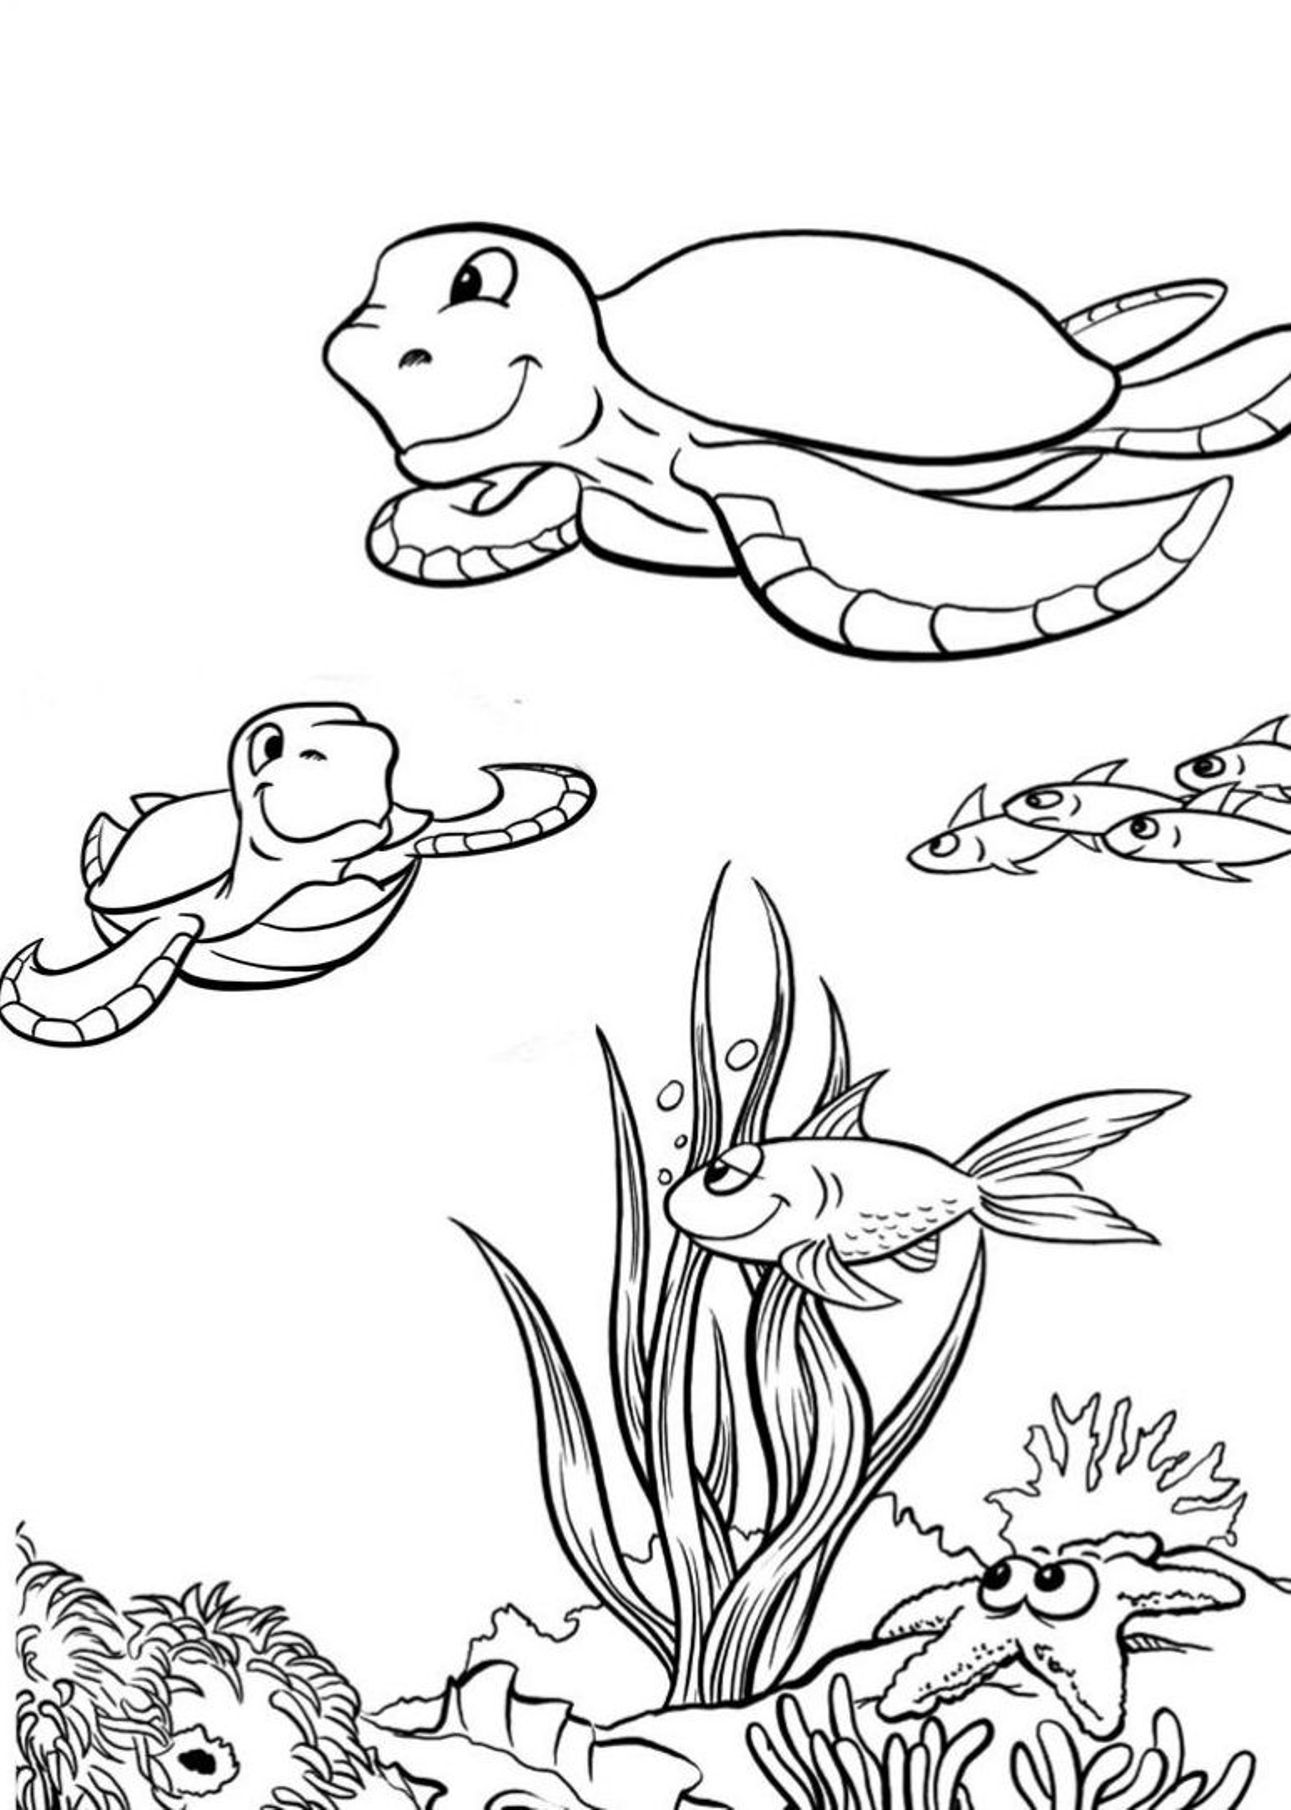 Sea turtle coloring pages 360coloringpages for Sea turtles coloring pages